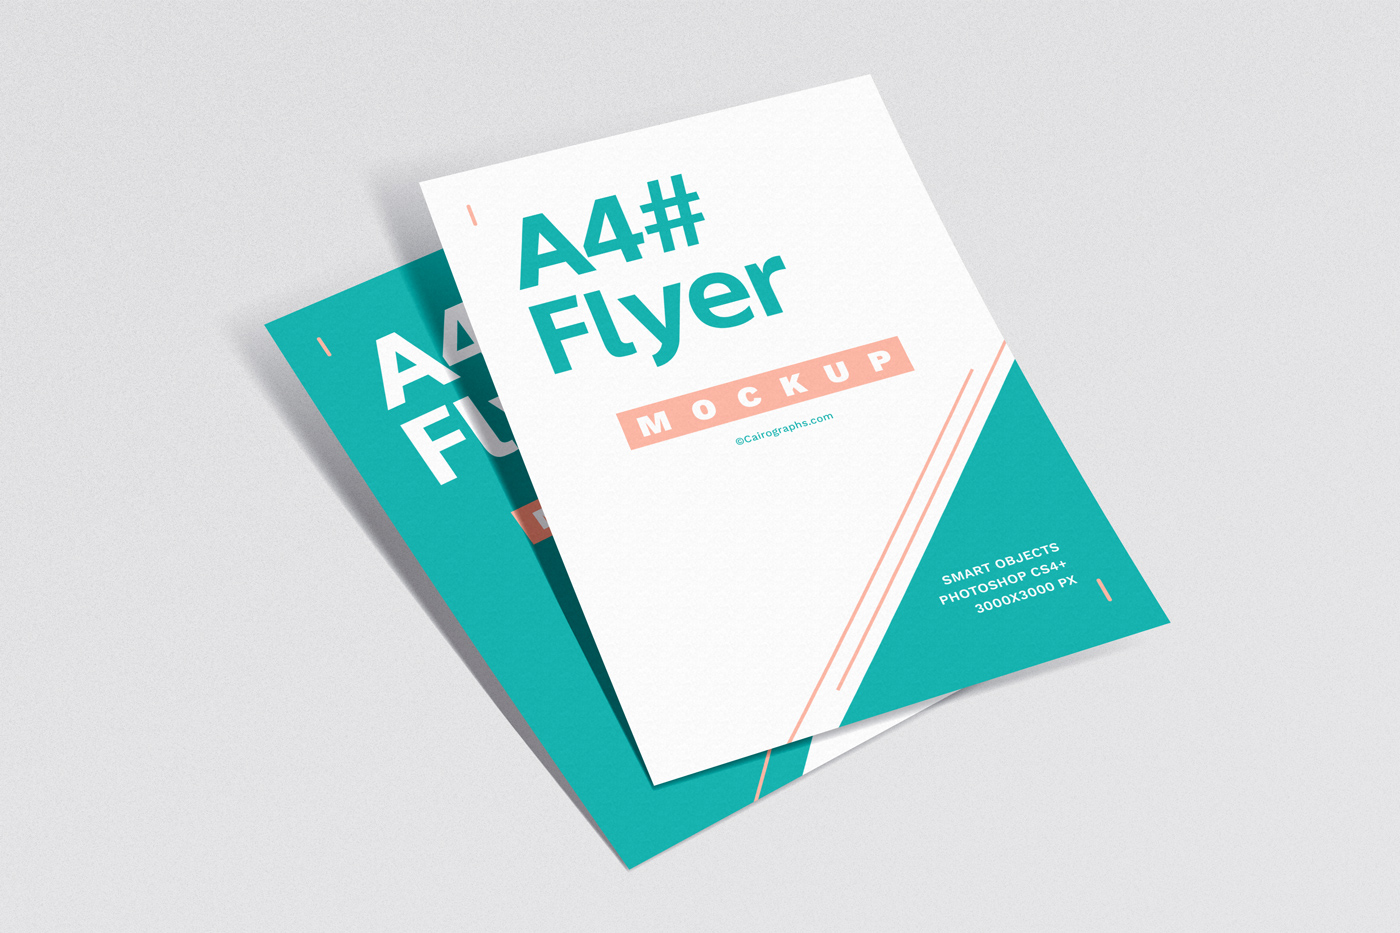 Posters & Flyers Mockups Vol.2 example image 4